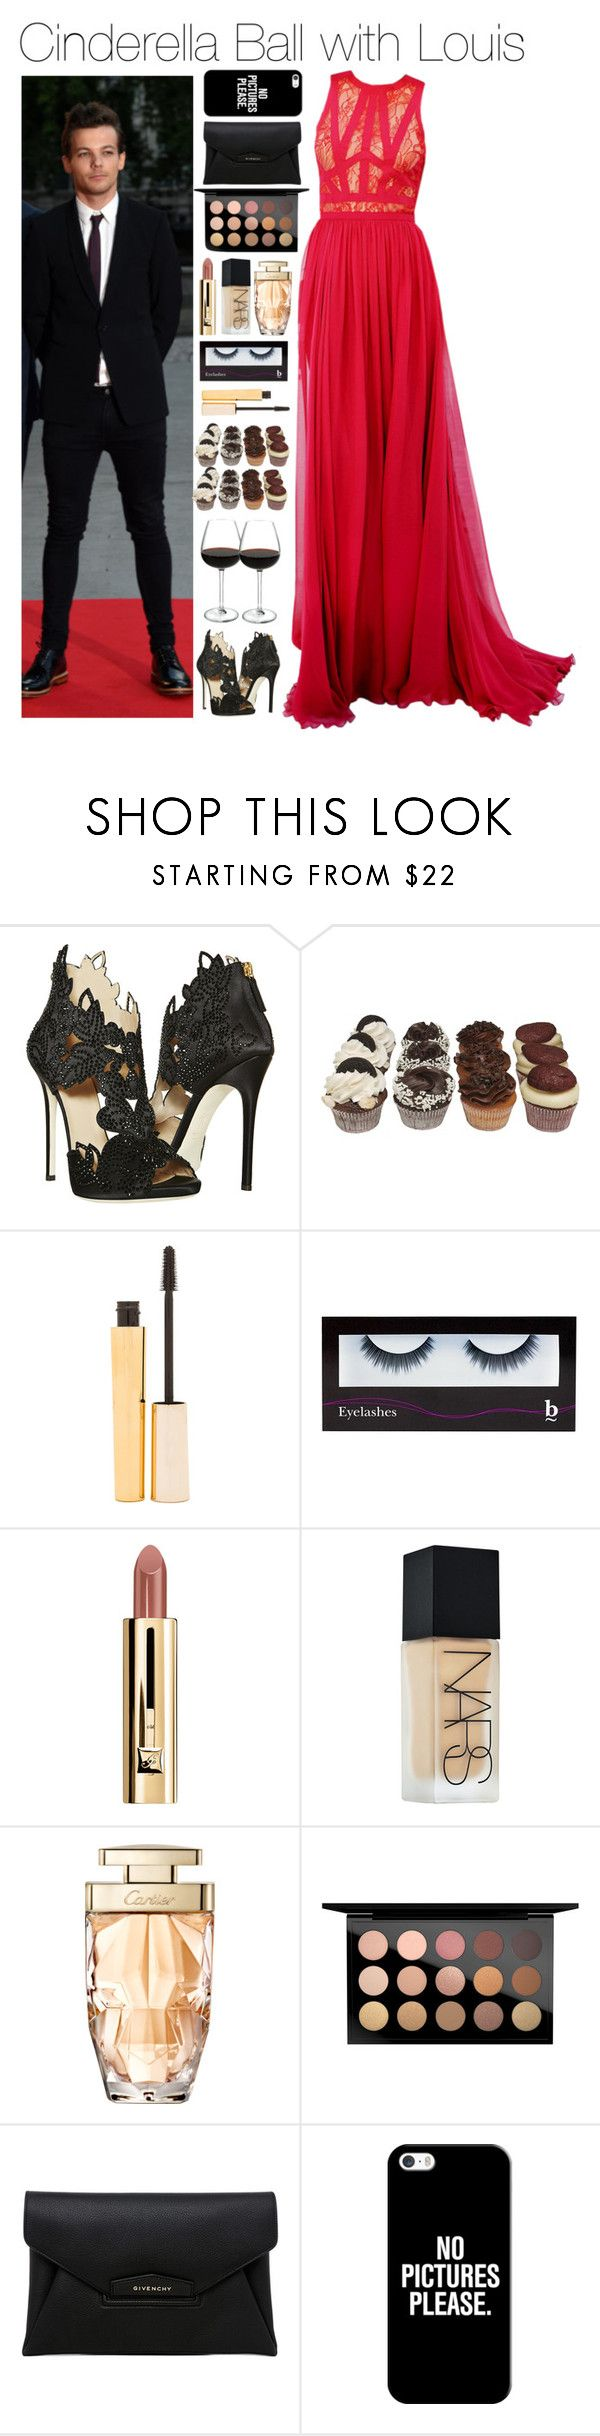 """""""Cinderella Ball with Louis"""" by xhoneymoonavenuex ❤ liked on Polyvore featuring La Perla, Avenue, Stila, BBrowBar, NARS Cosmetics, MAC Cosmetics, Givenchy and Casetify"""